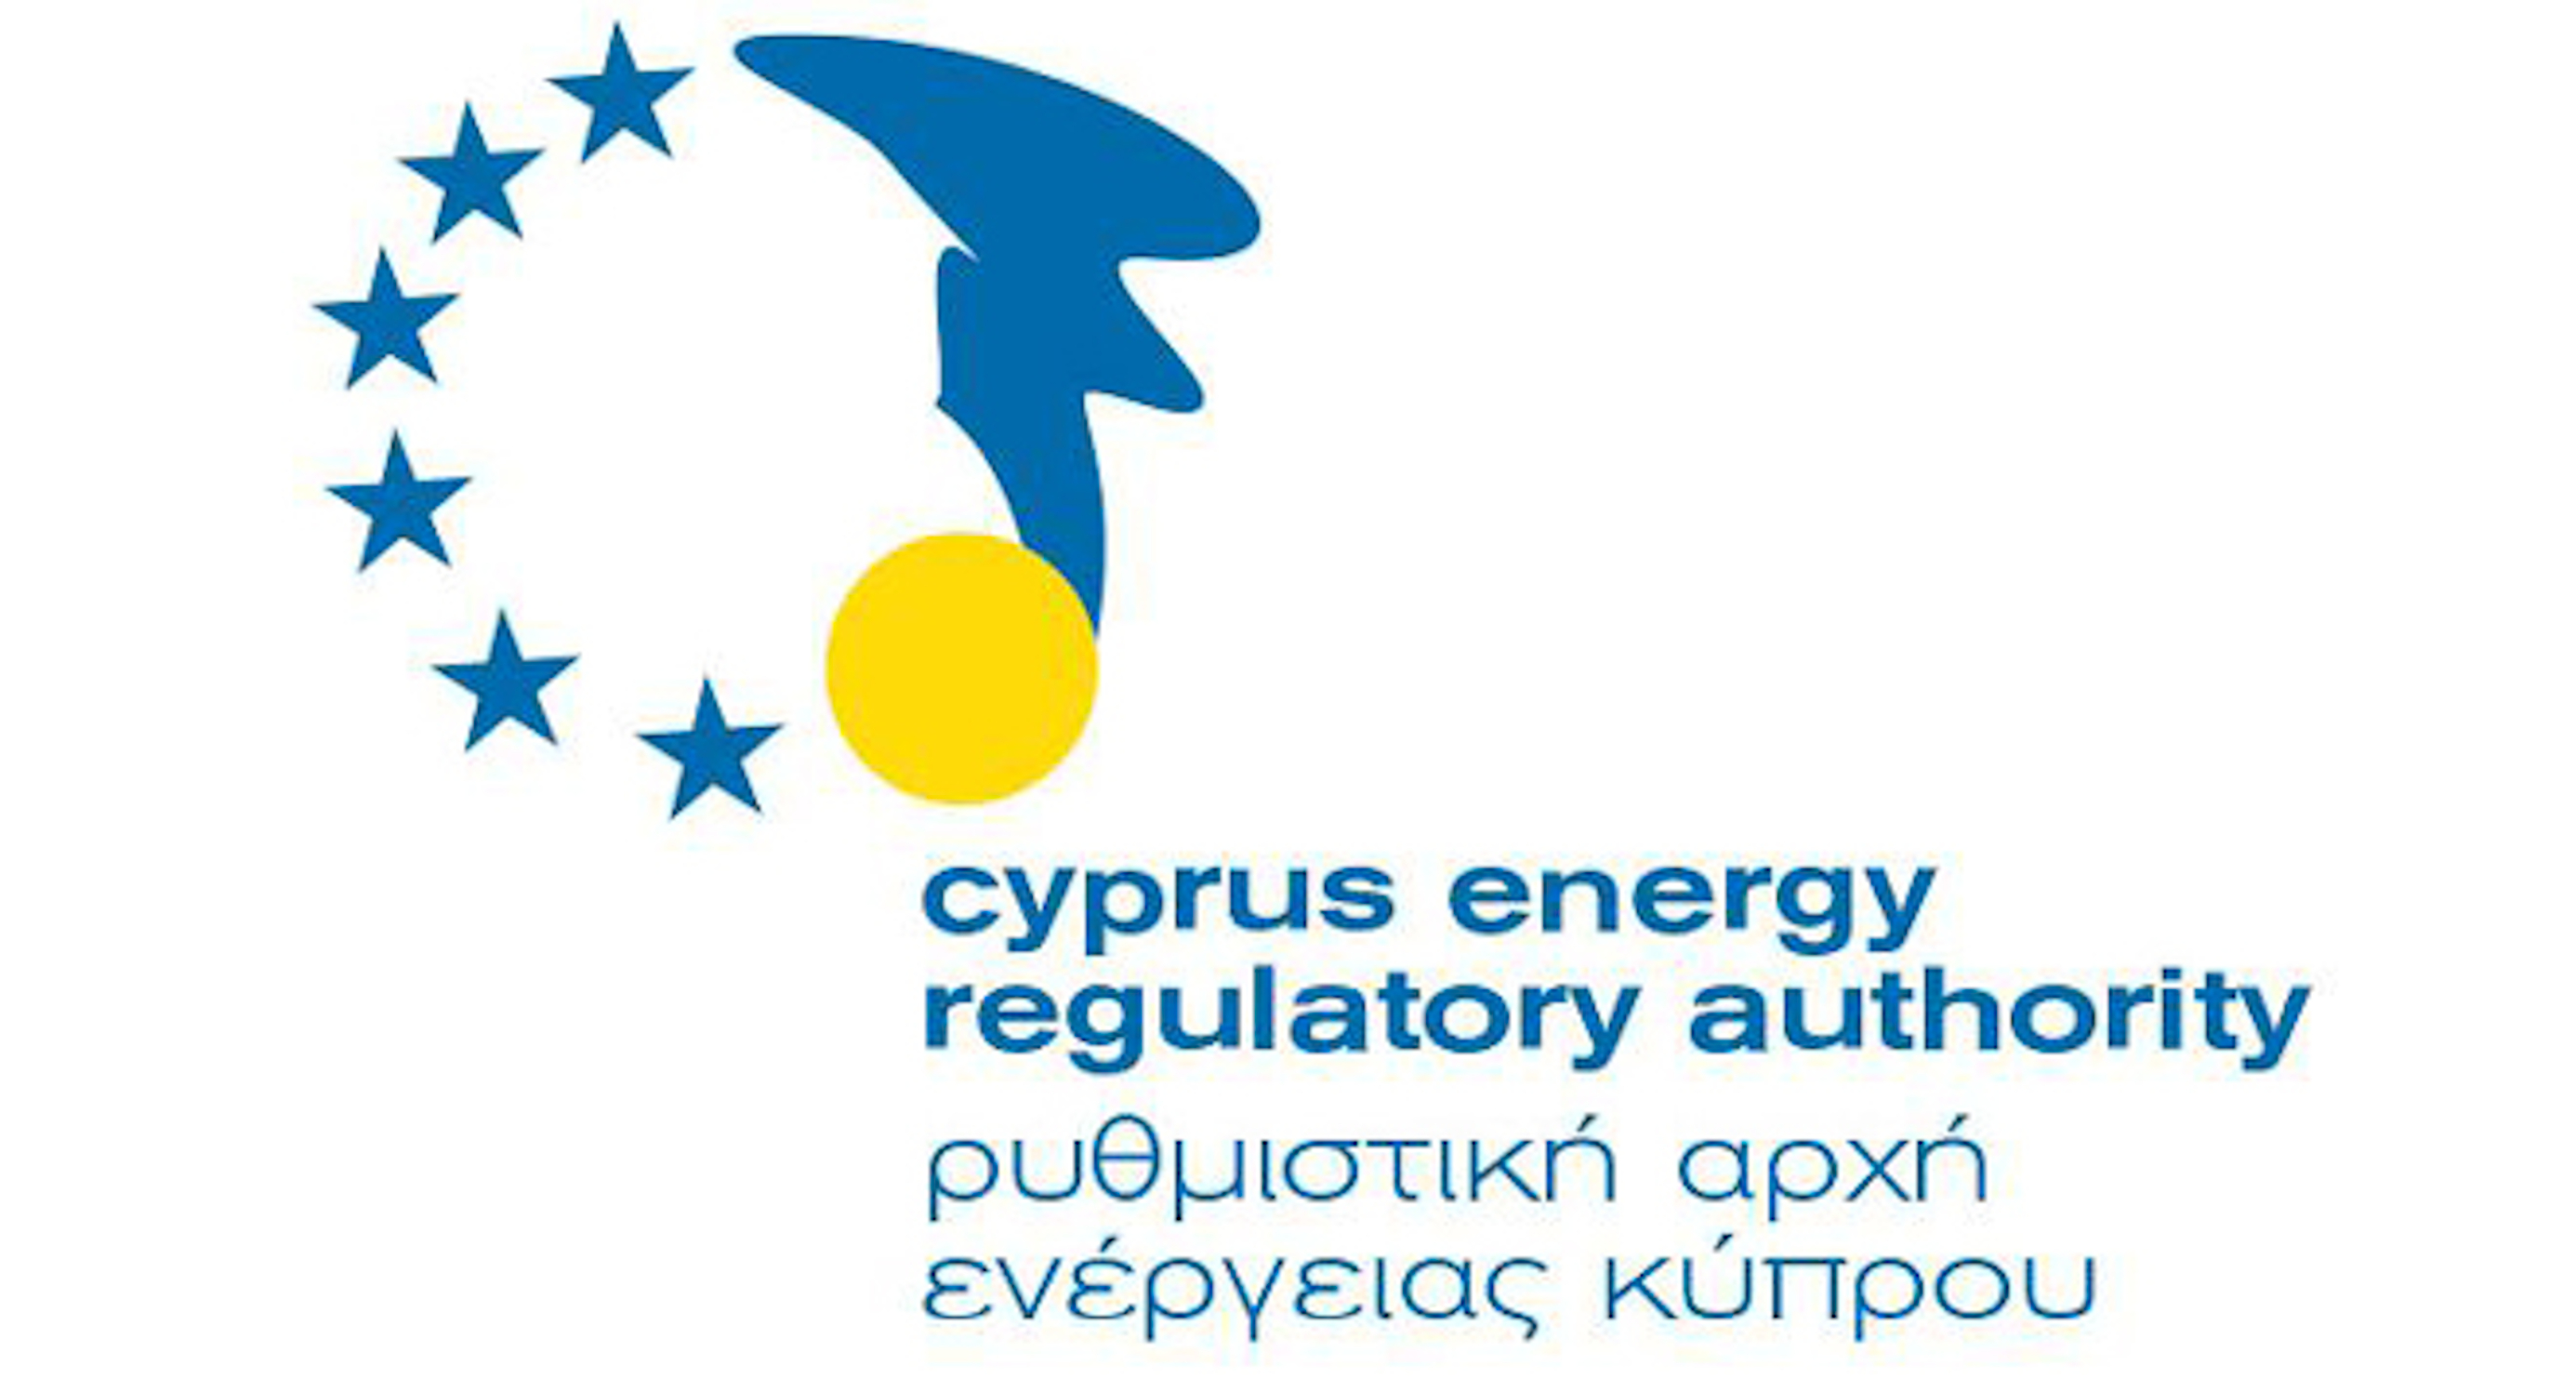 Cyprus Energy Regulatory Authority